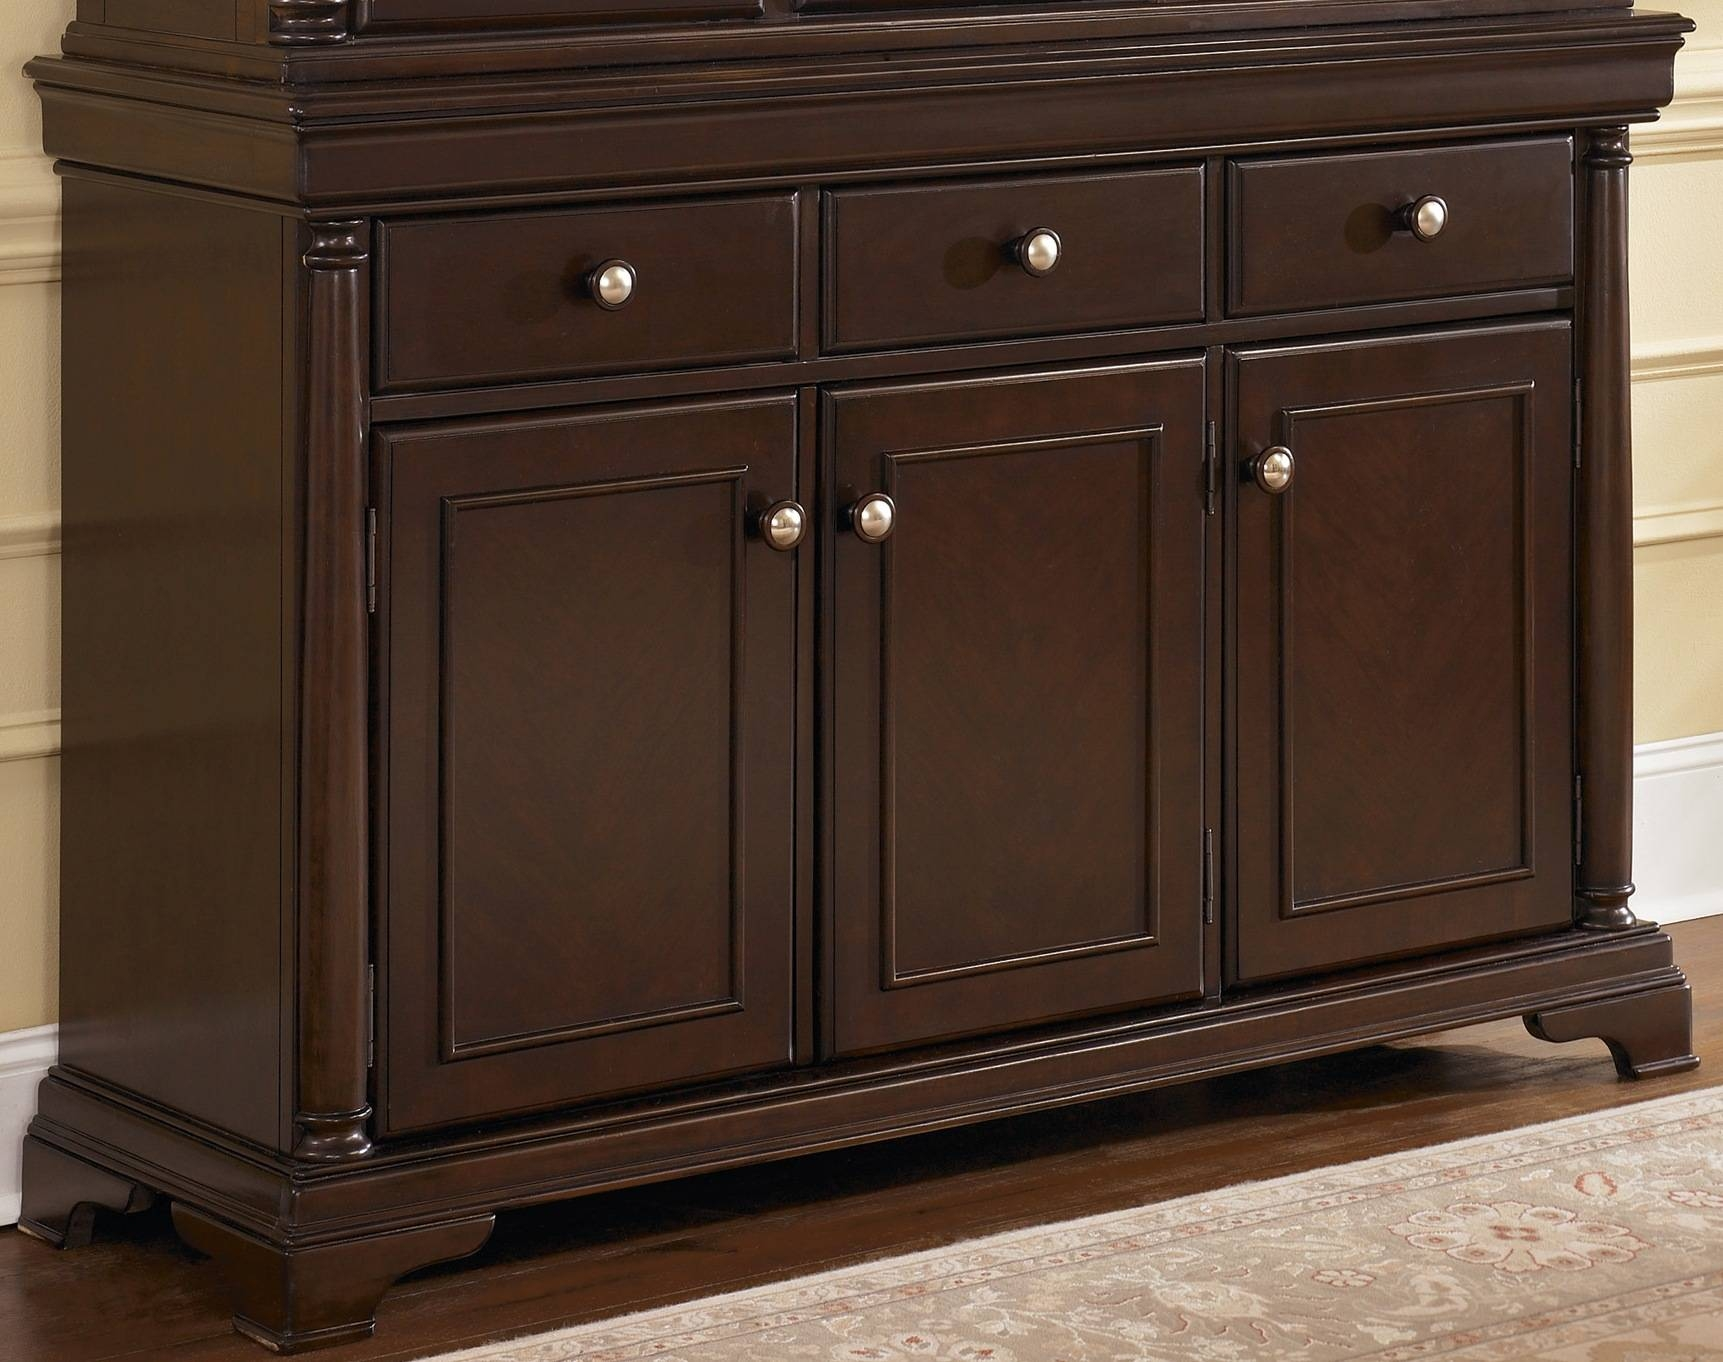 Dining Buffet Furniture » Gallery Dining With Regard To Latest Black Dining Room Sideboards (View 15 of 15)